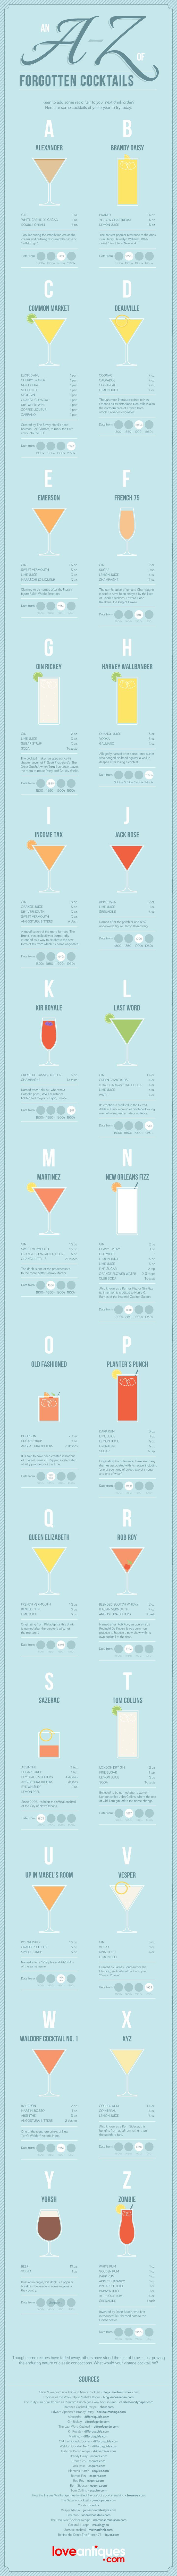 NeoMan Studios, a design agency, created in tandem with LoveAntiques.com an awesome infographic of some of the best retro cocktails that are worth bringing back, from A to Z. They also gave a history of when these drinks were popular and fun facts about each cocktail. Some of them may be familiar to anyone who's ever frequented a modern speakeasy, but others like the citrusy XYZ, boozy Yorsh (made with beer and vodka), or the complicated Common Market are definitely worth a sip.